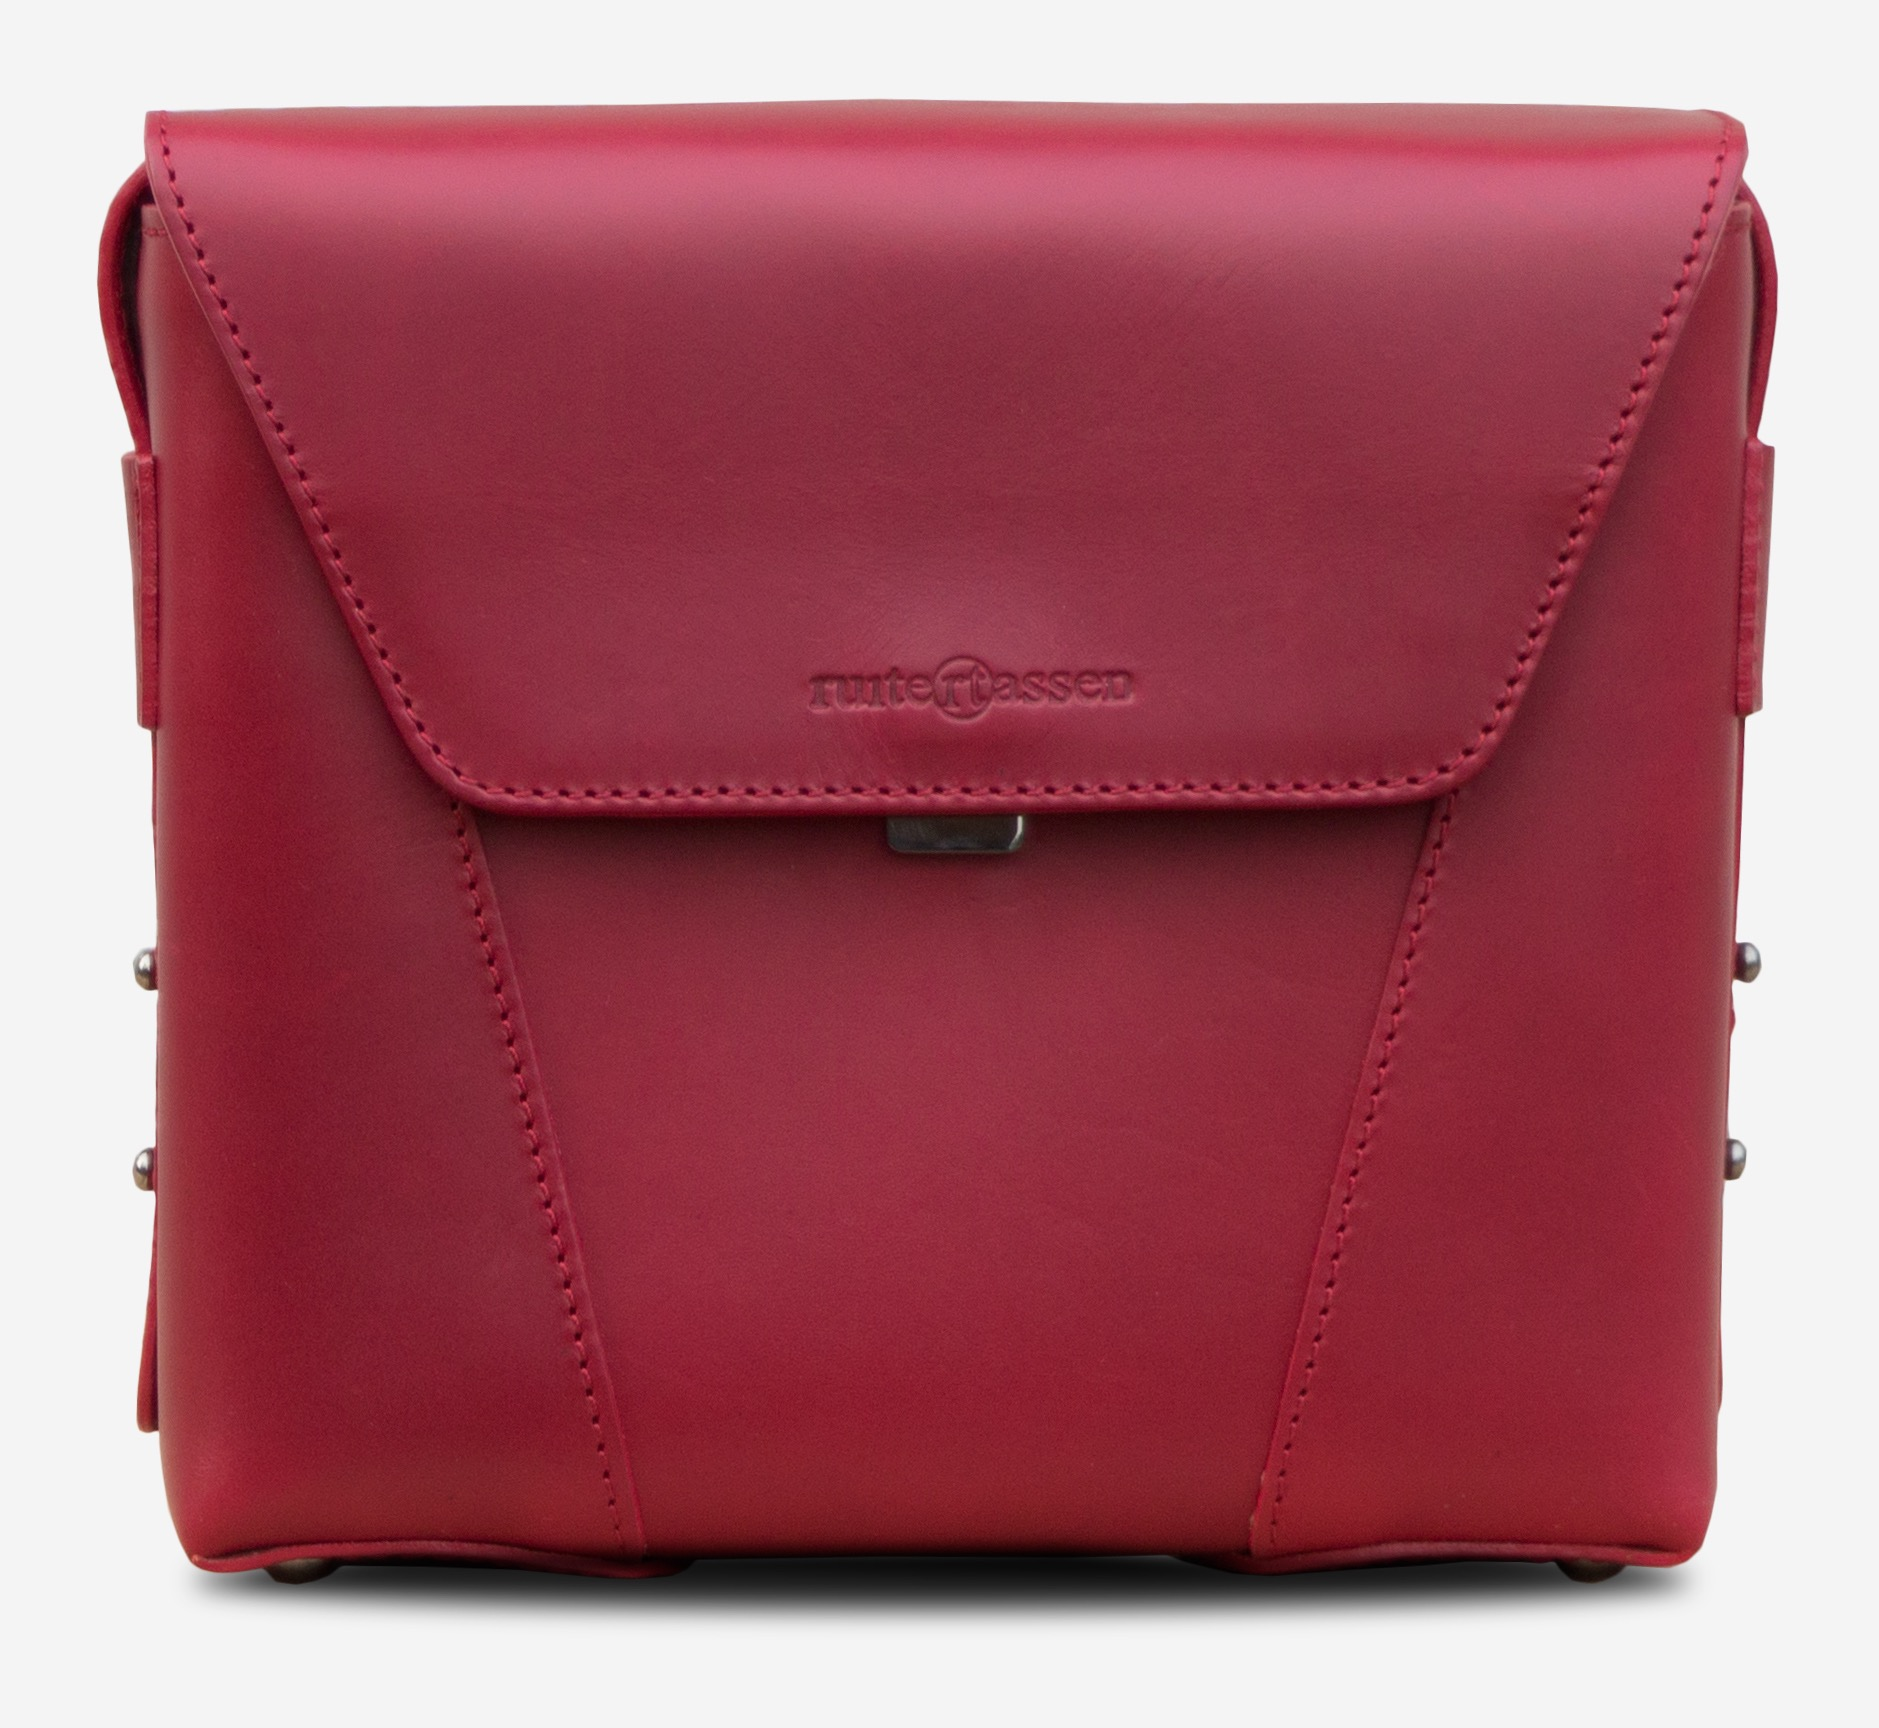 d90748df1c3b Front view of the small red vegetable-tanned leather crossbody bag for  women.